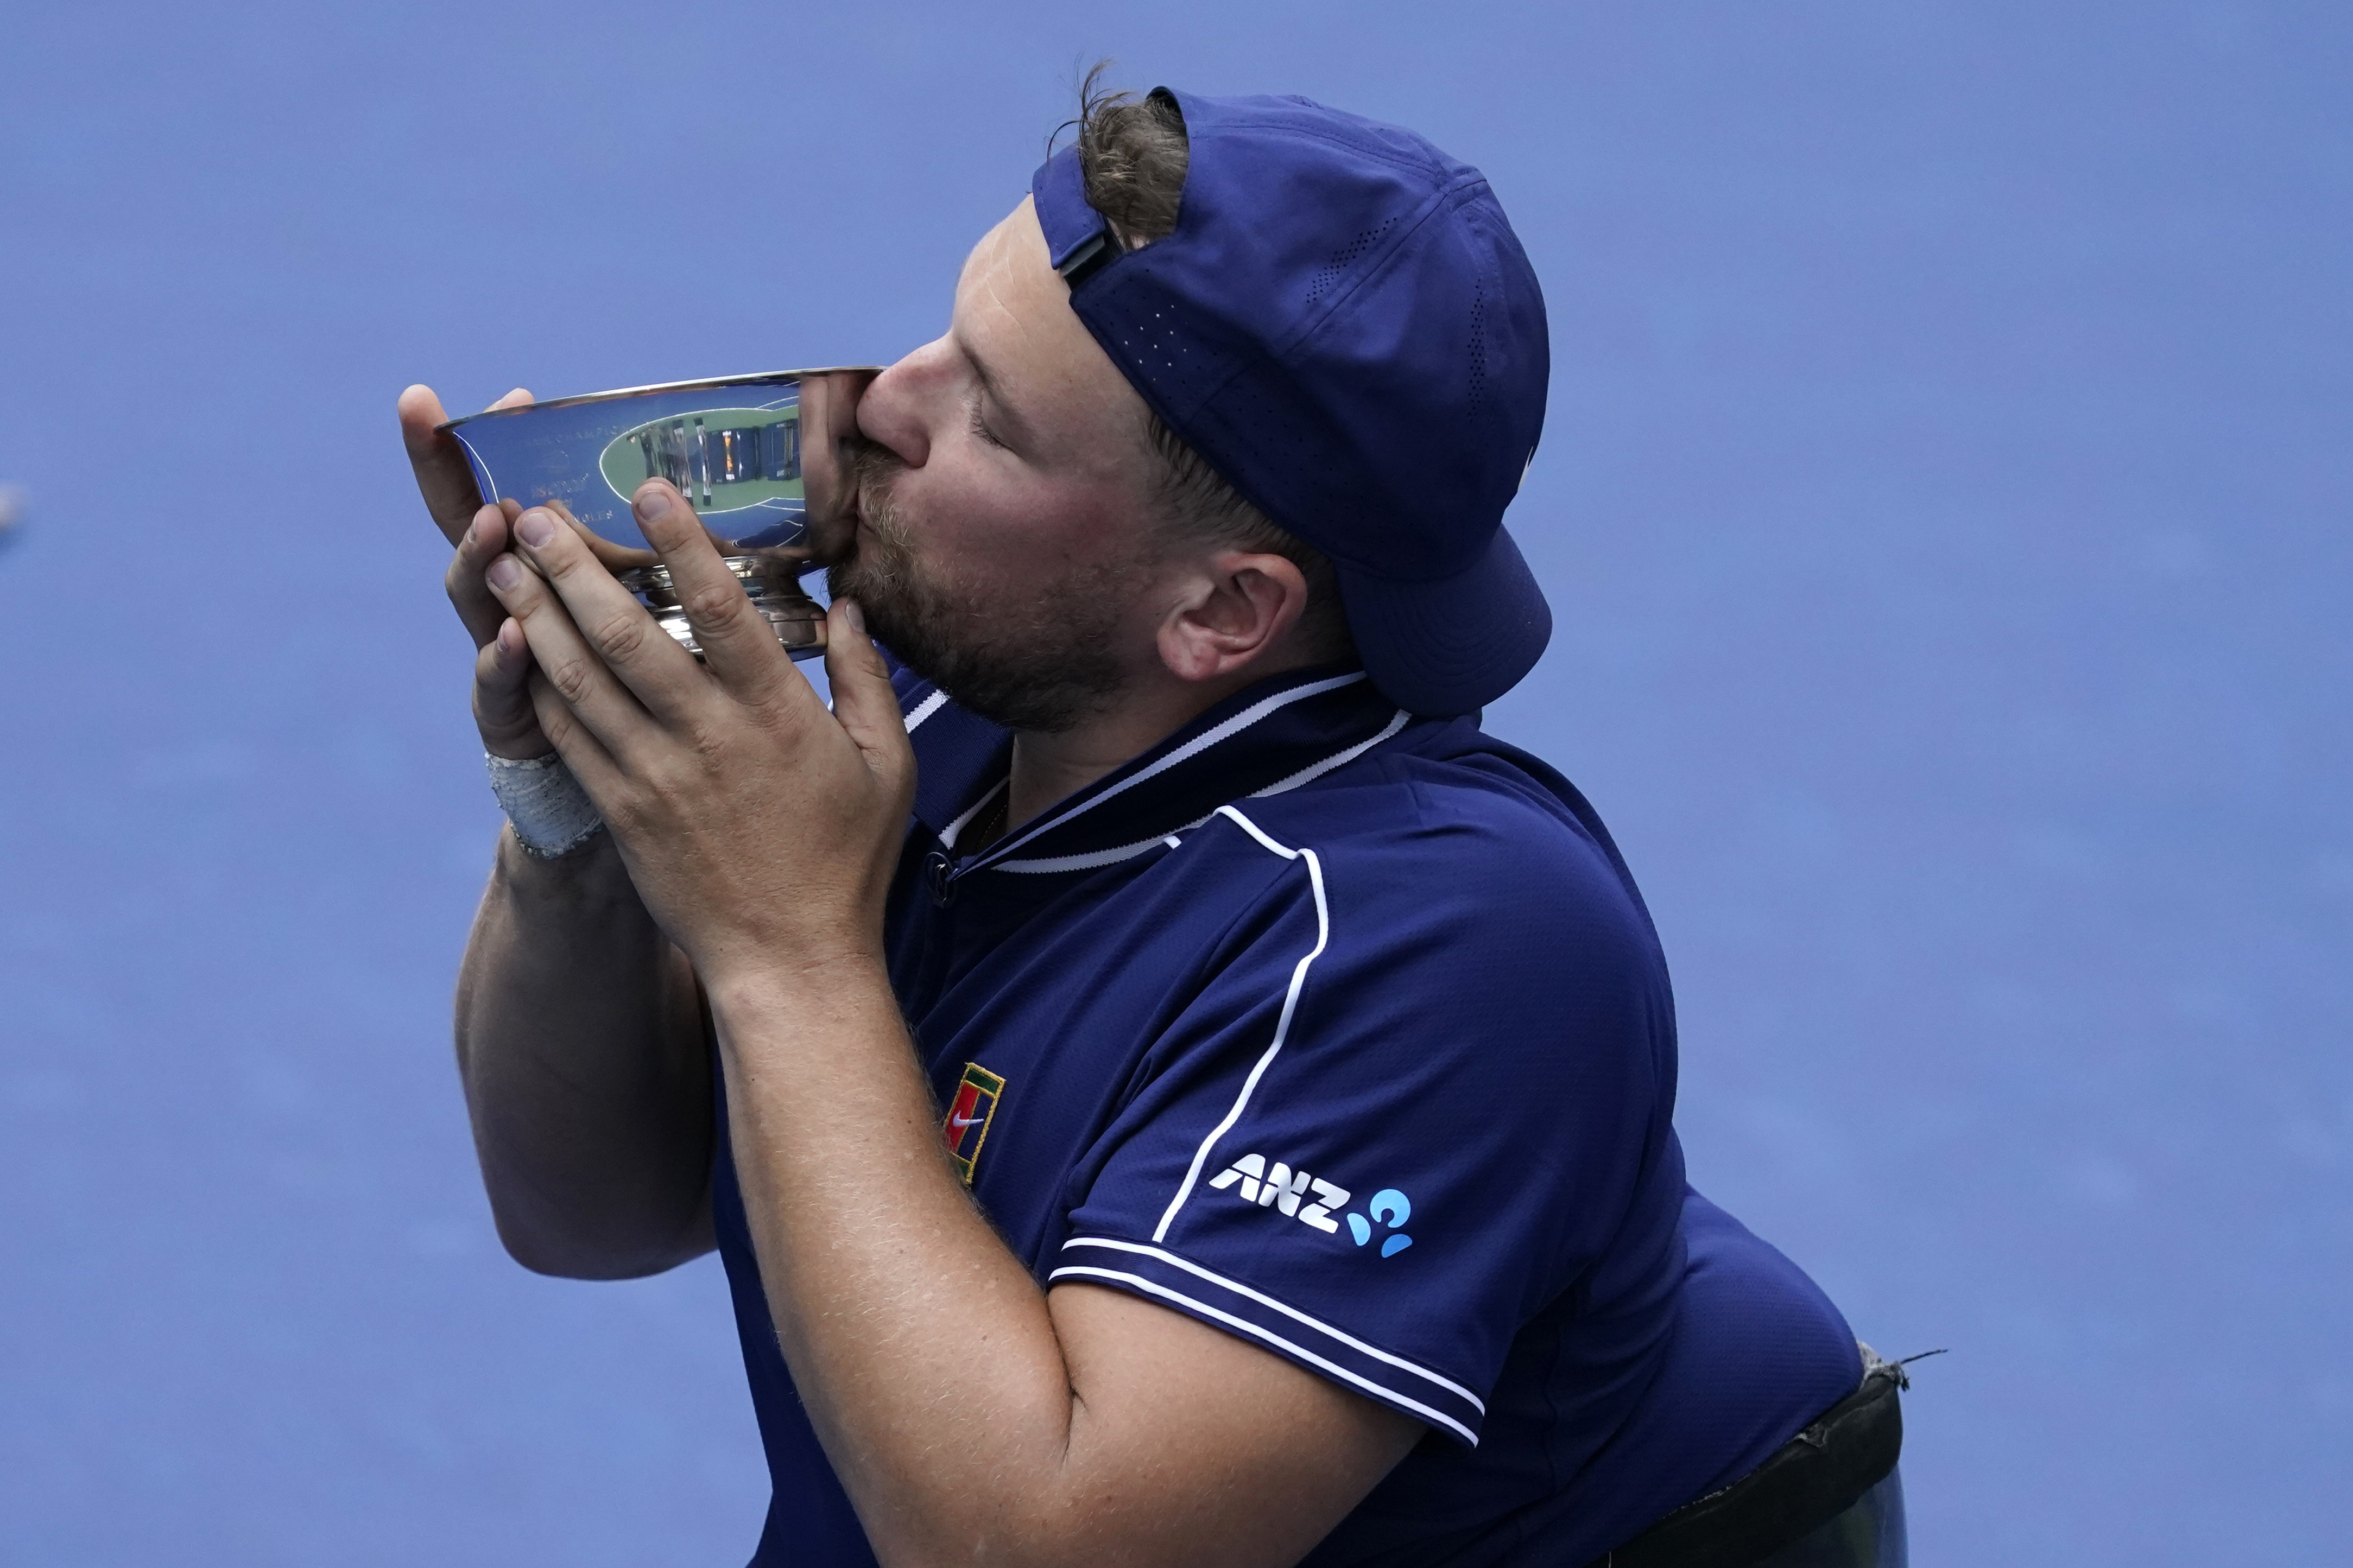 Dylan Alcott Achieves Coveted Golden Grand Slam After Winning US Open